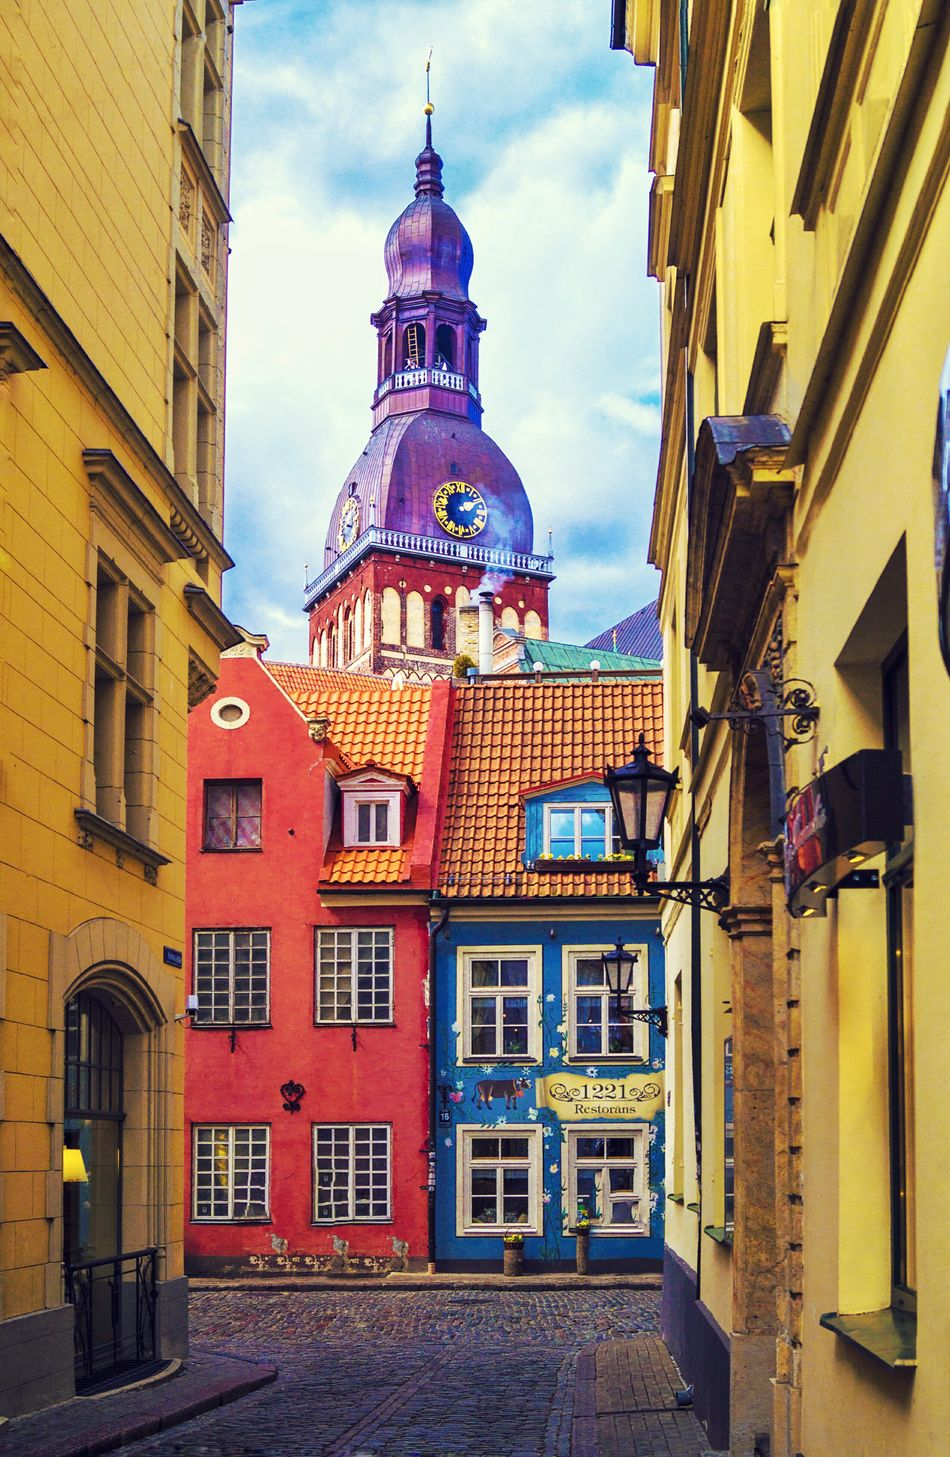 Riga Architecture Building Exterior Built Structure Window Religion Sky Travel Destinations No People Day Outdoors City Cityscape Politics And Government Riga Latvia RigaCity Riga Old Town Rigaofficial Rigaonline Riga City Rigaphotography